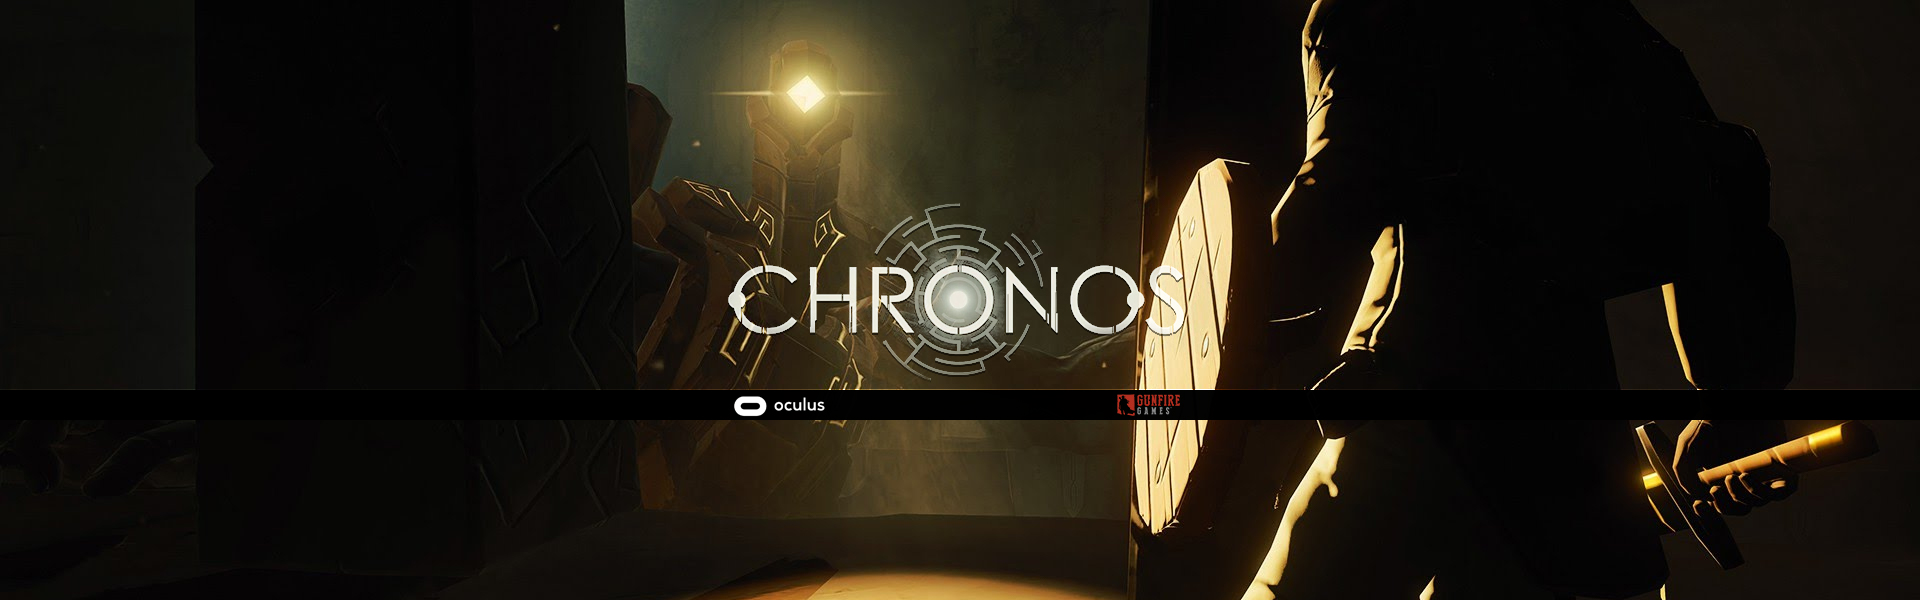 http://robwestwood.com/wp-content/uploads/2013/01/Chronos-Banner.jpg